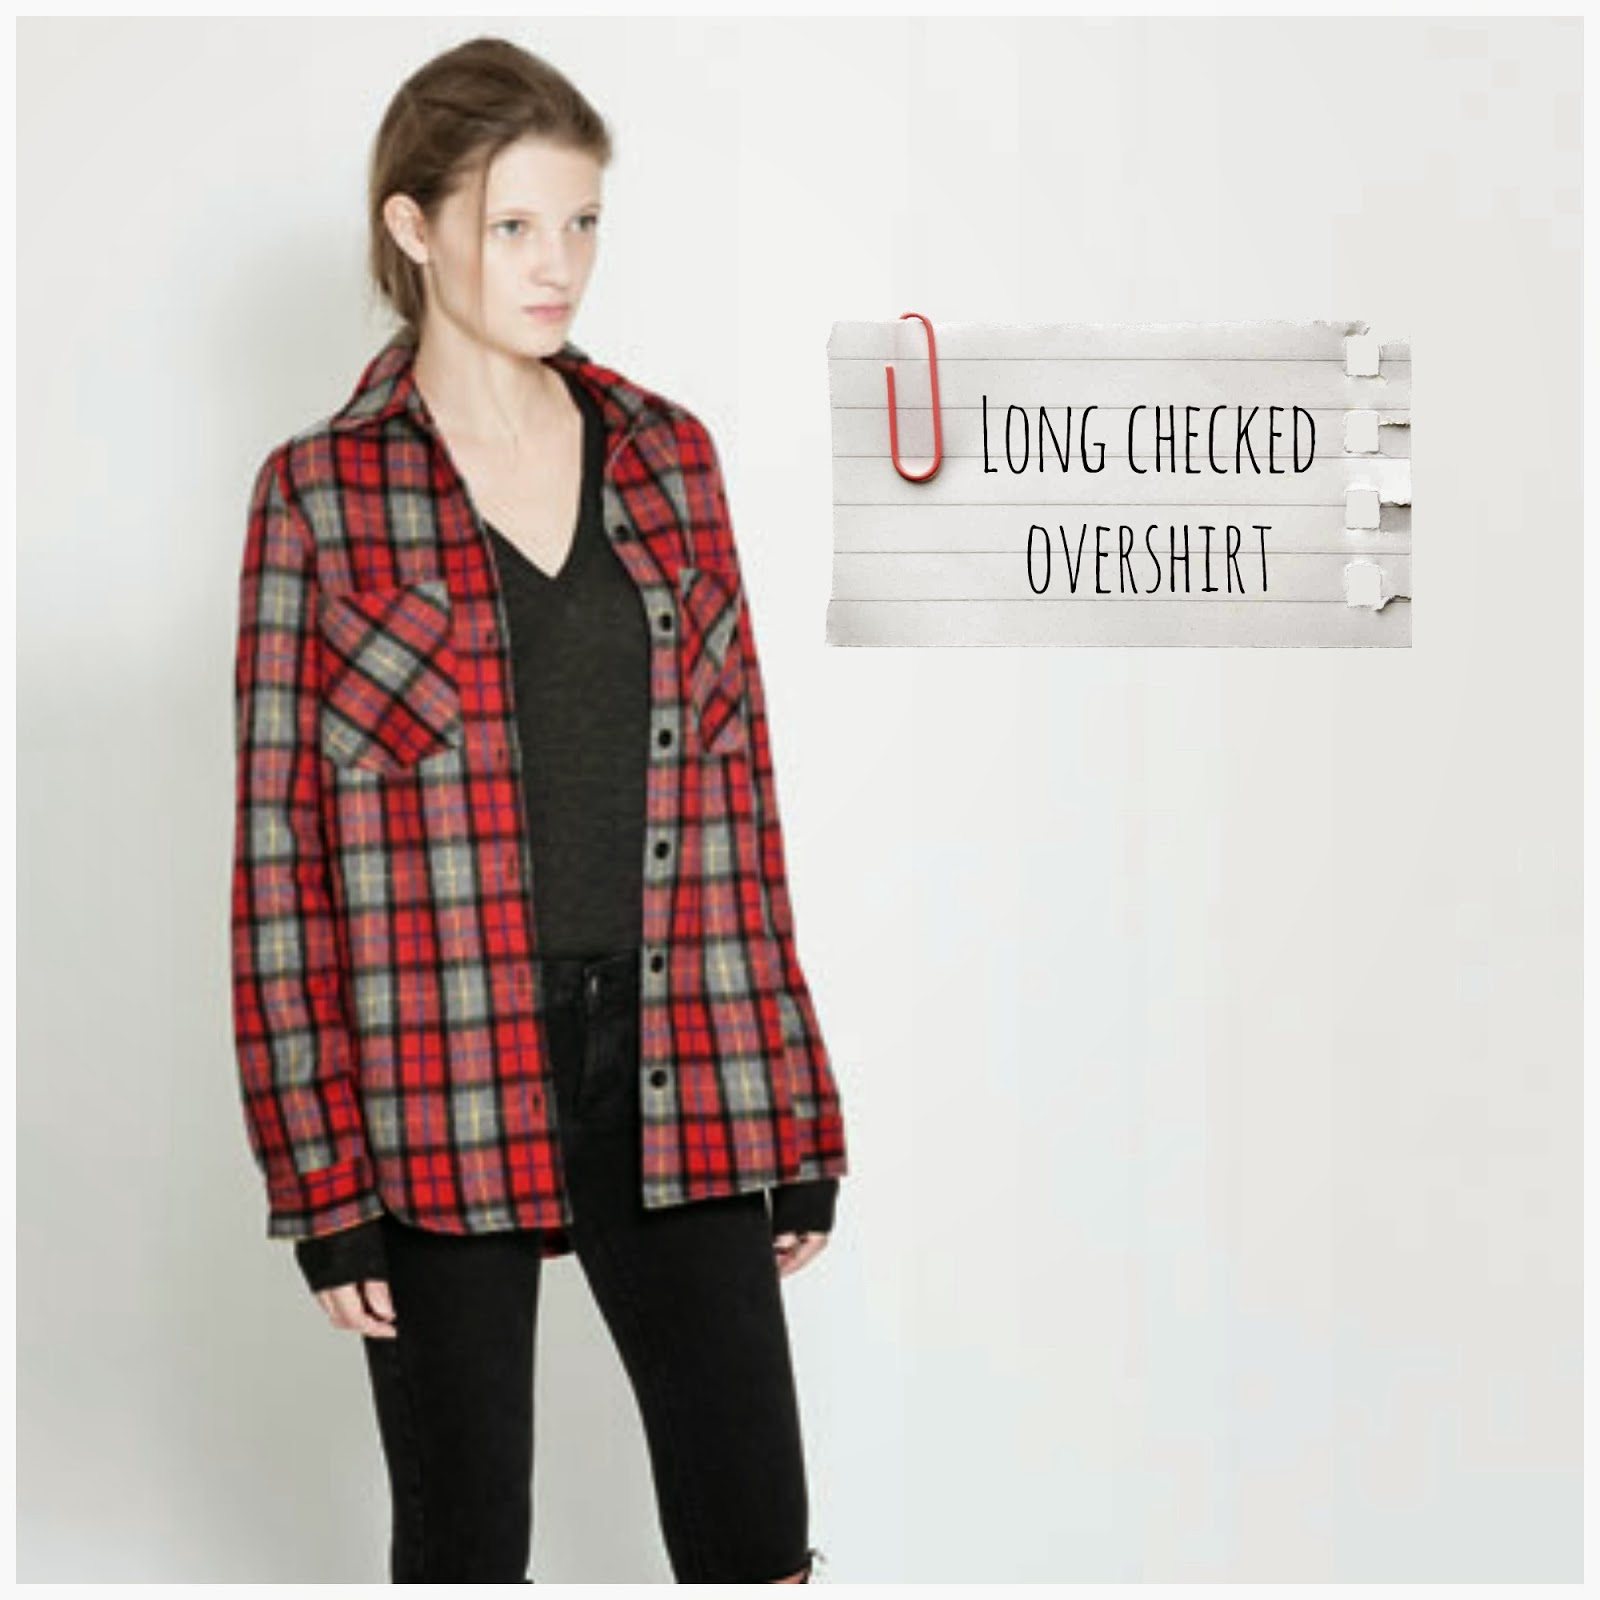 Long Checked Overshirt - Zara